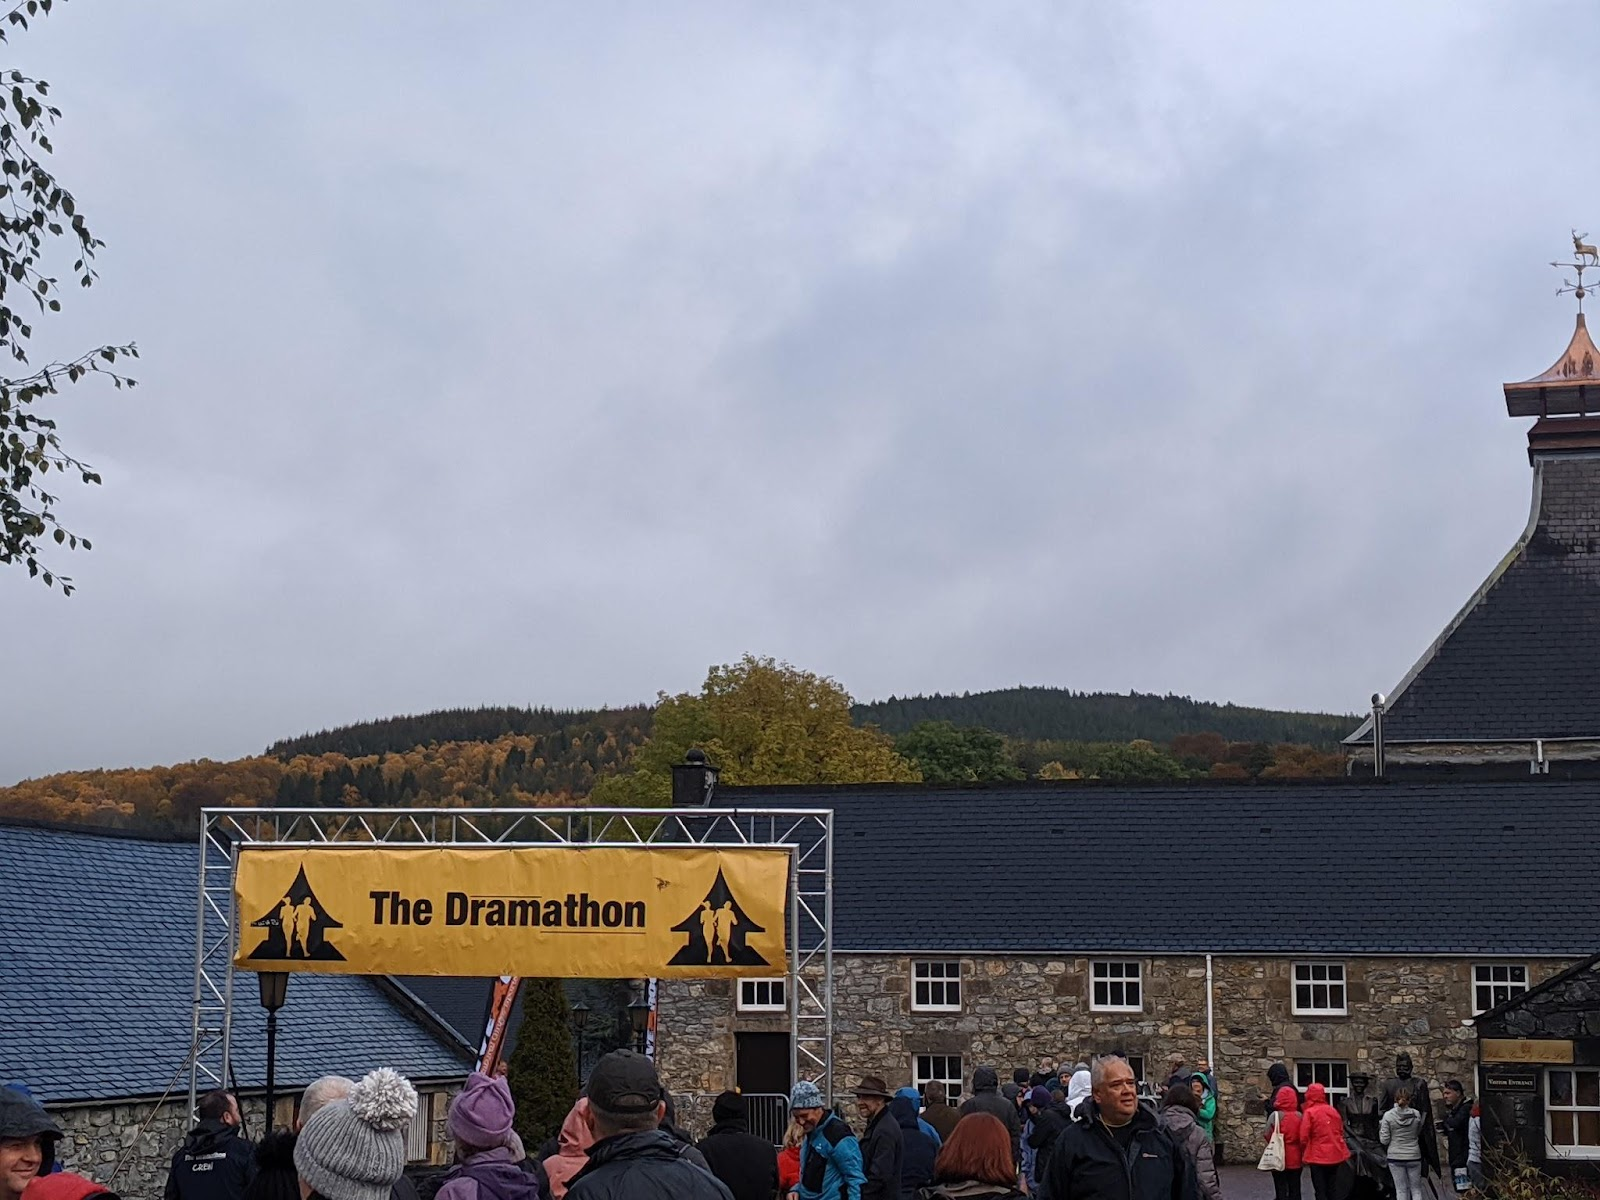 The Dramathon finish line